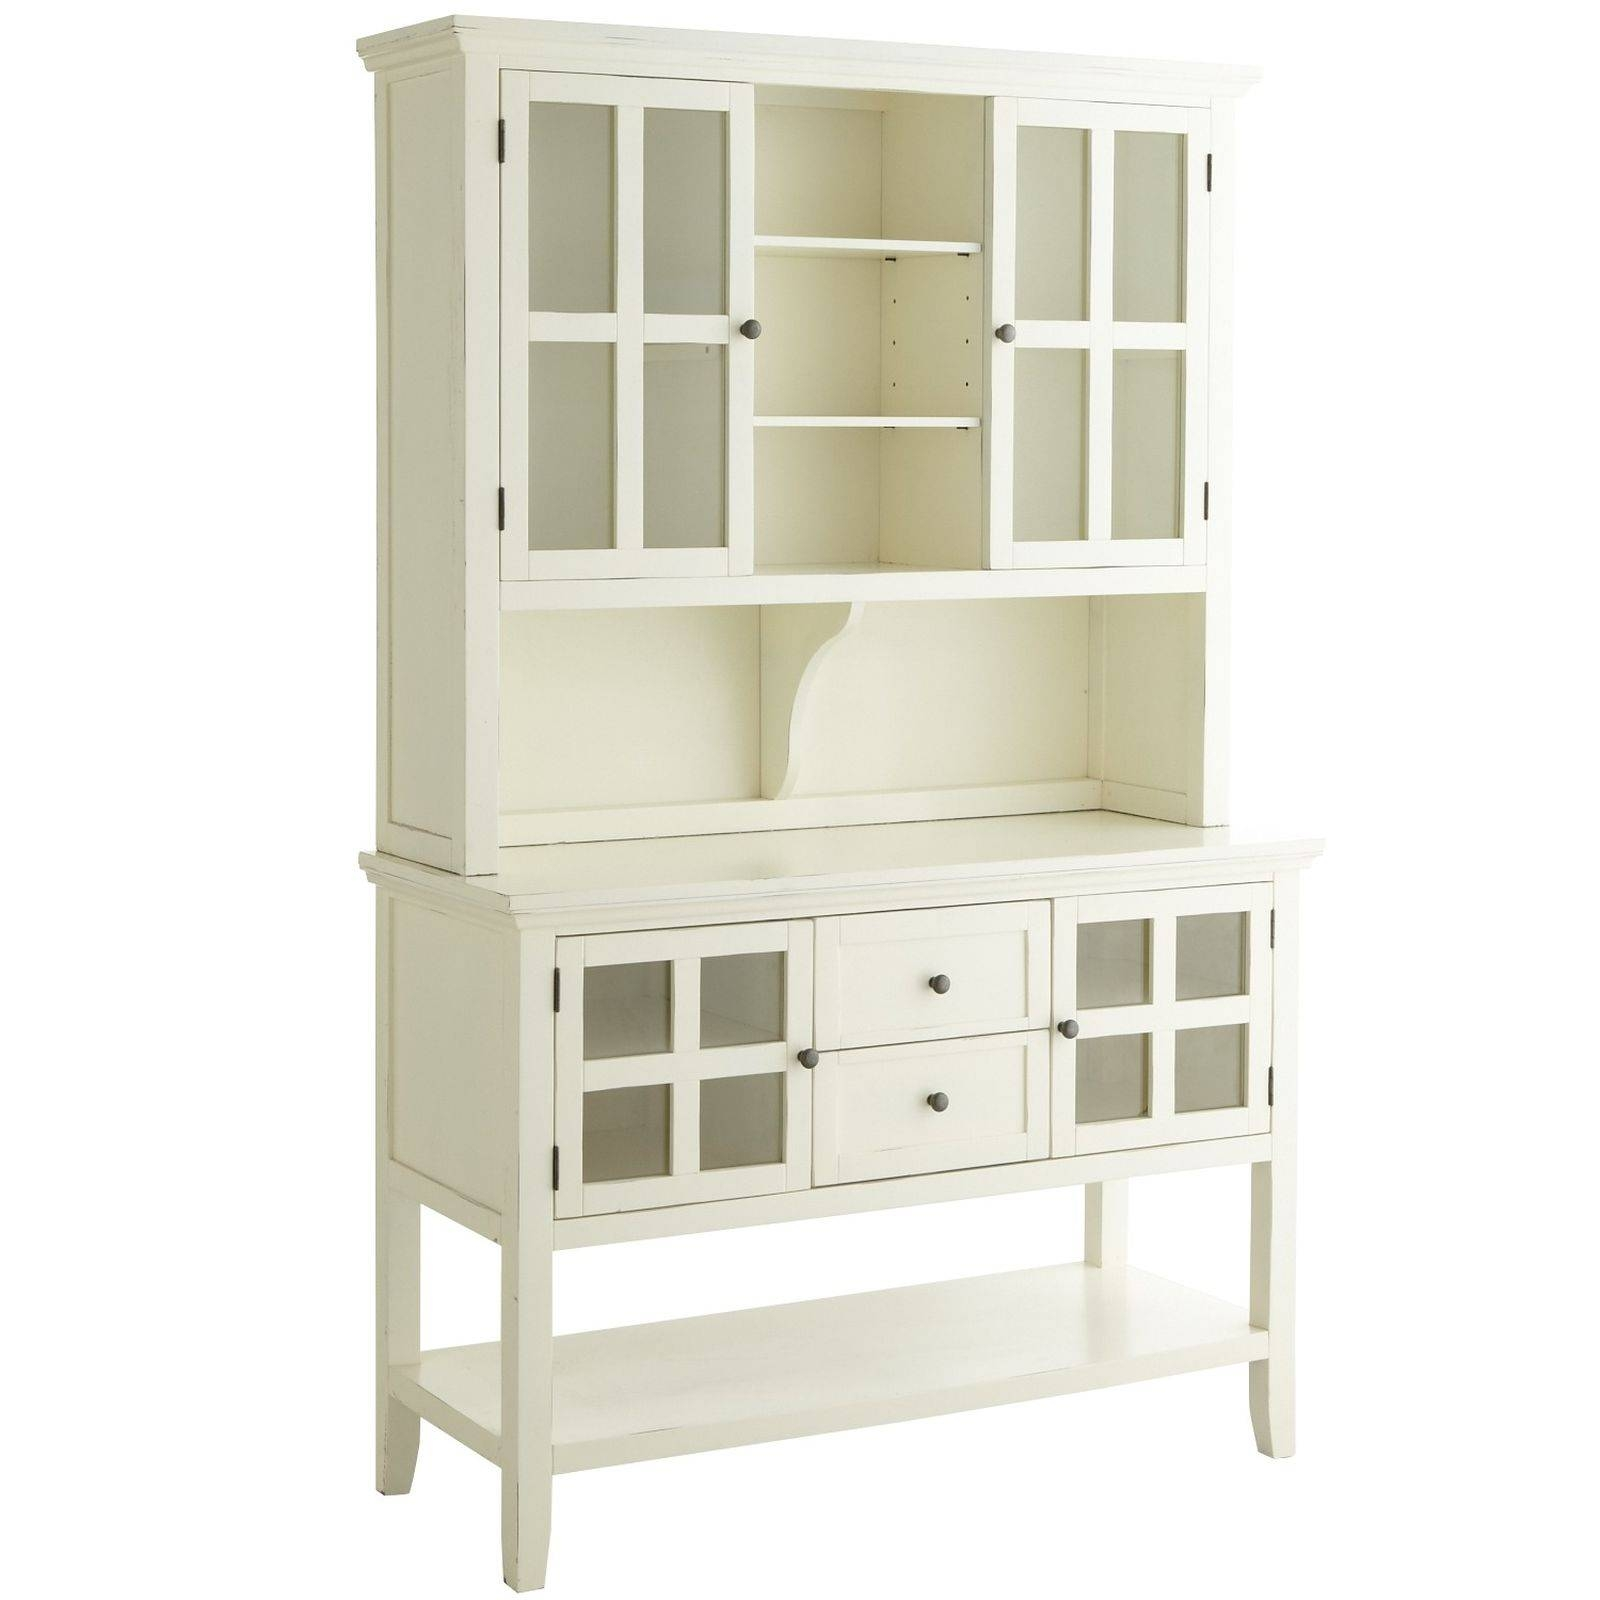 Sideboards: Glamorous Small Buffet Hutch Small Desks With Hutch Pertaining To Kitchen Sideboards White (View 15 of 20)